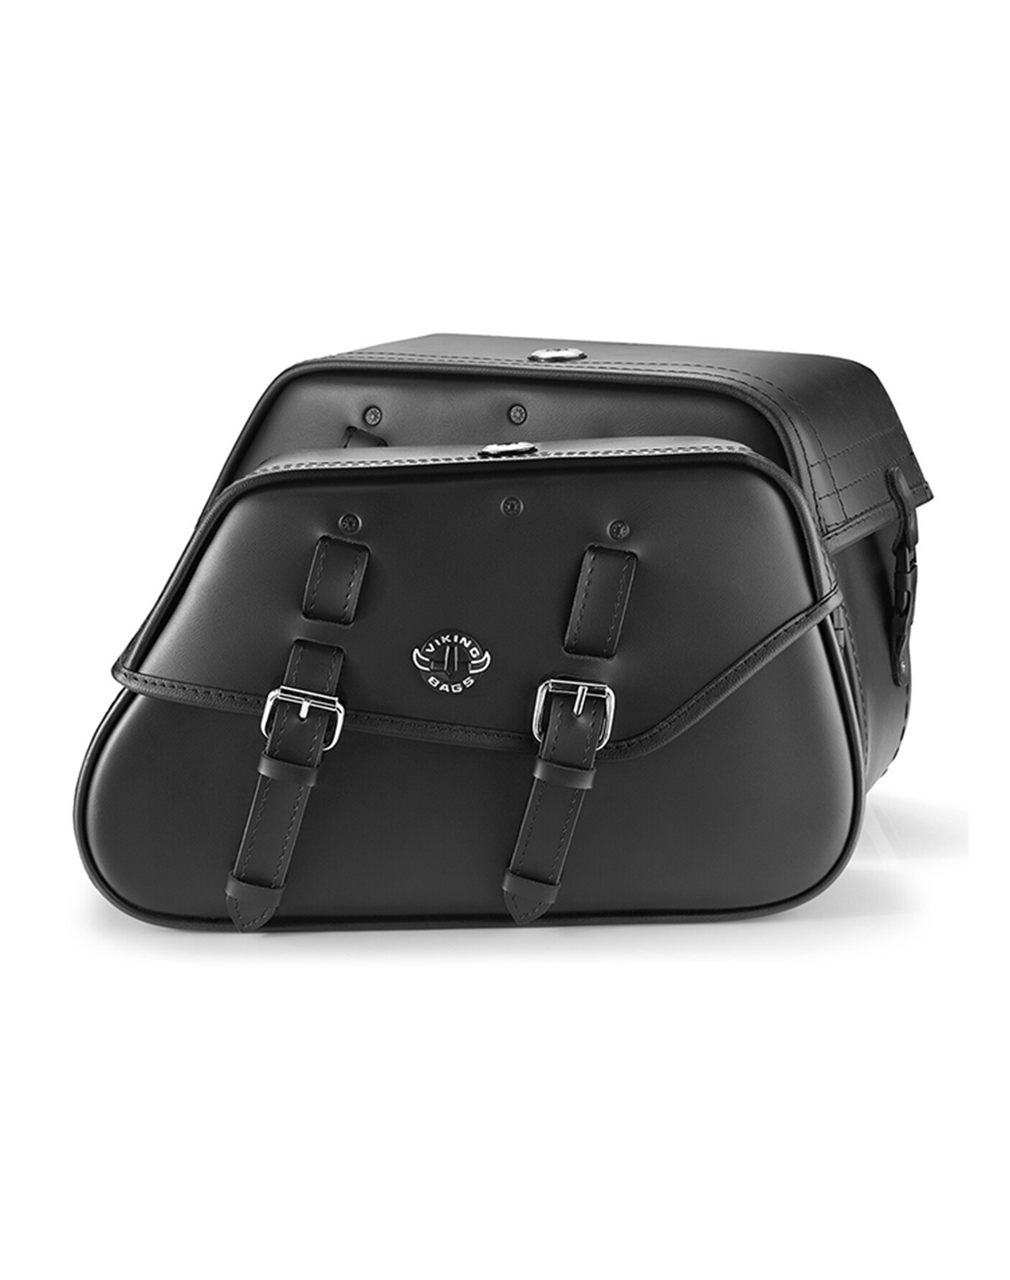 Viking Loki Classic Leather Motorcycle Saddlebags For Harley Softail Street Bob Both Bags View